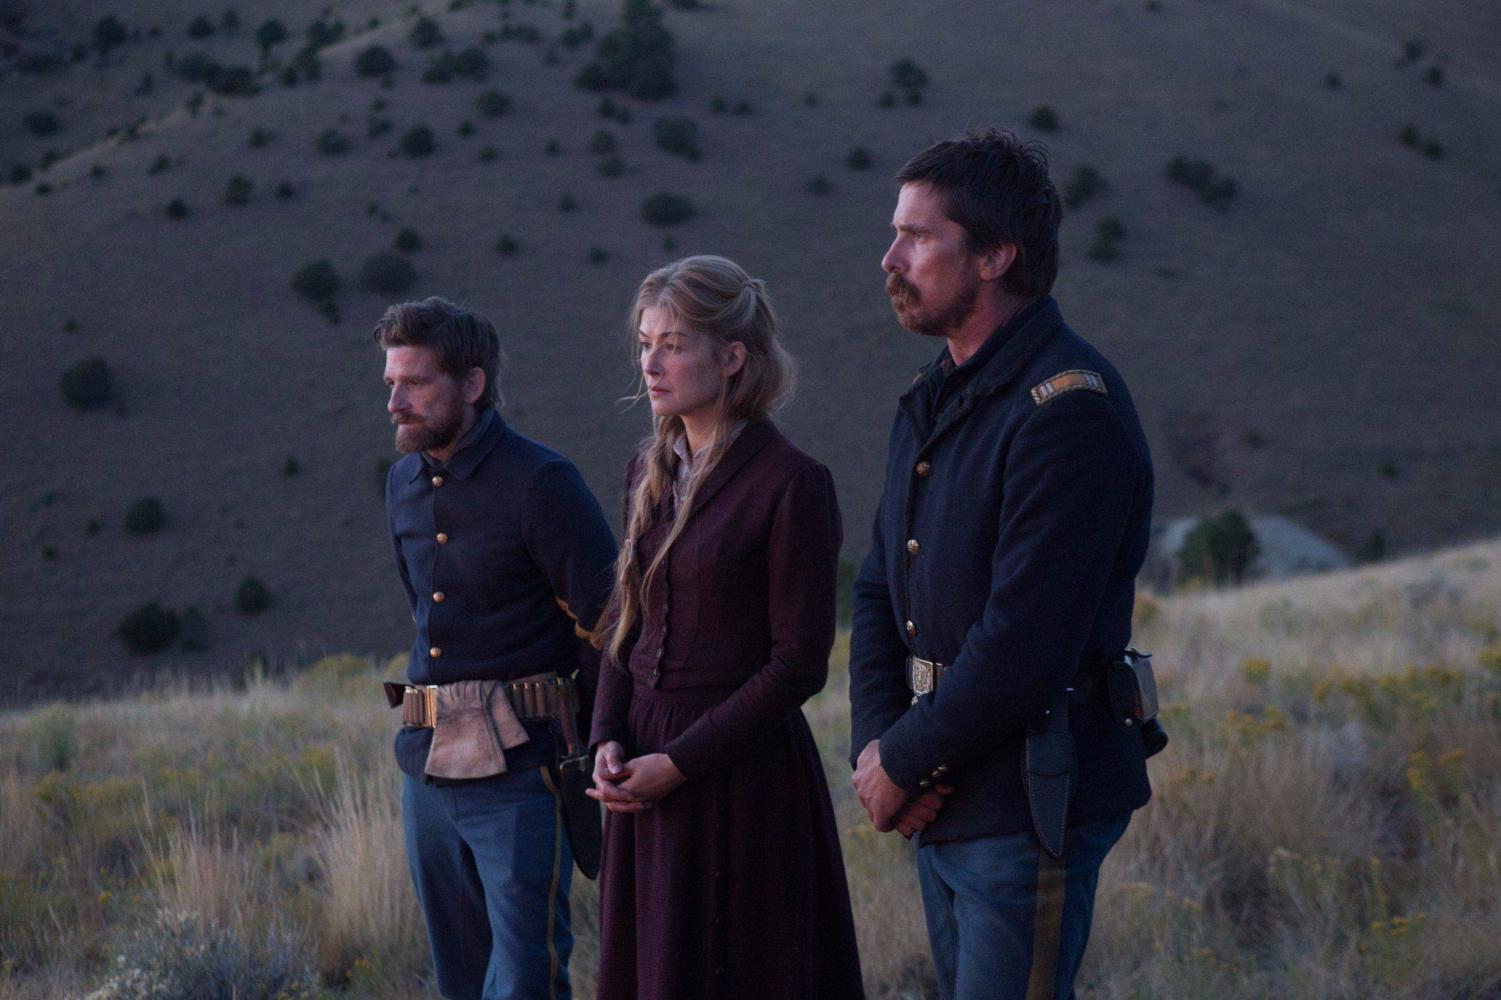 (Hostiles Movie/ Facebook)